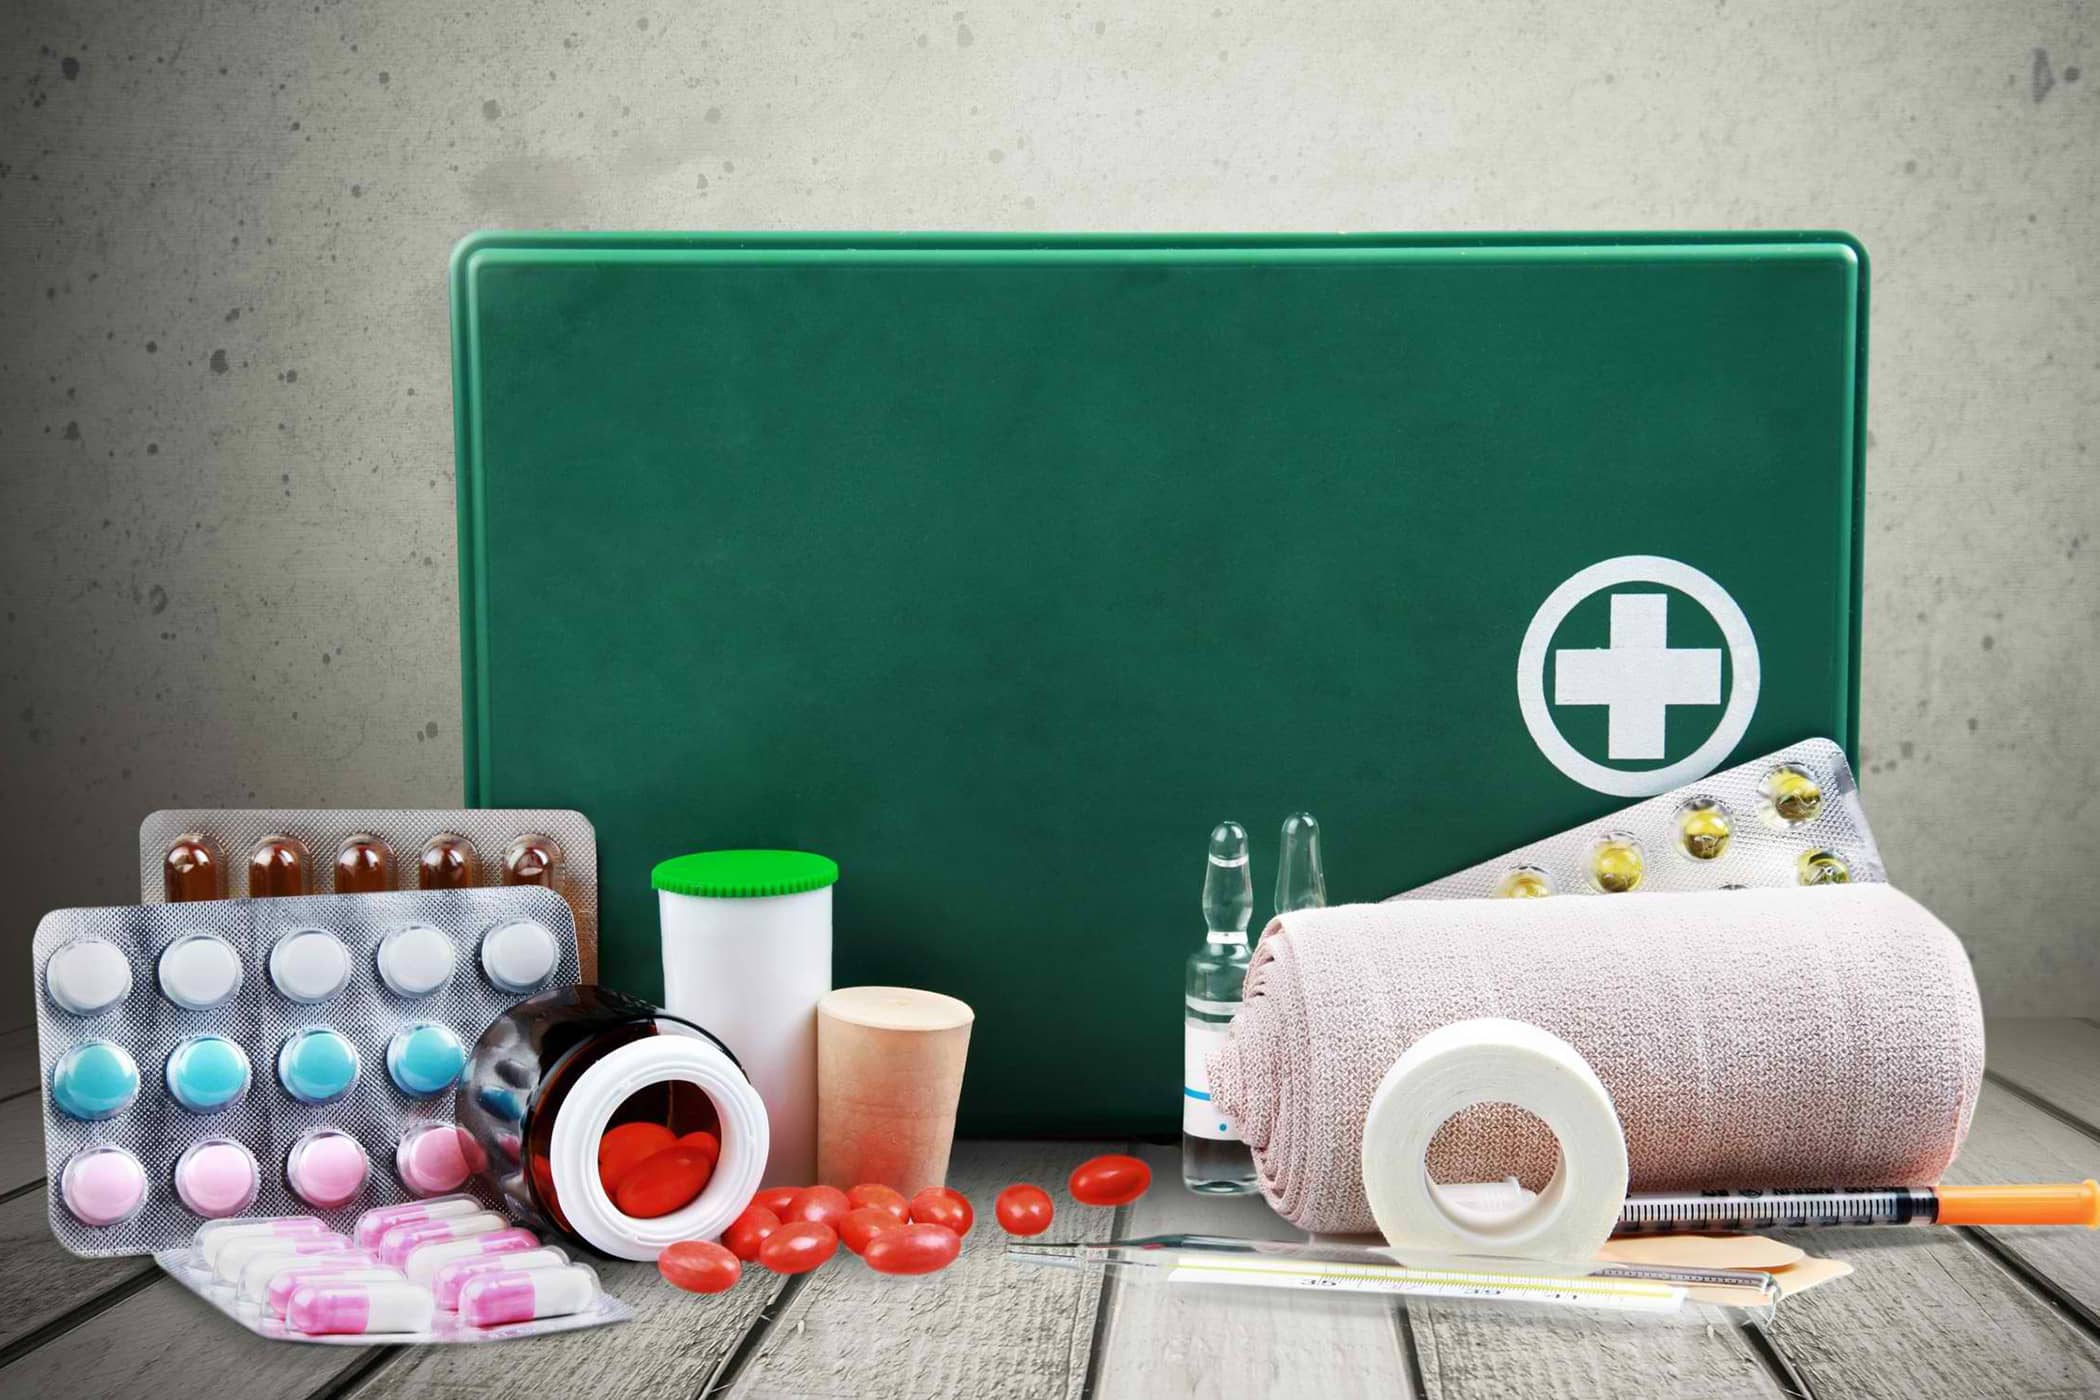 Homeopathic First Aid Kit in Dogs